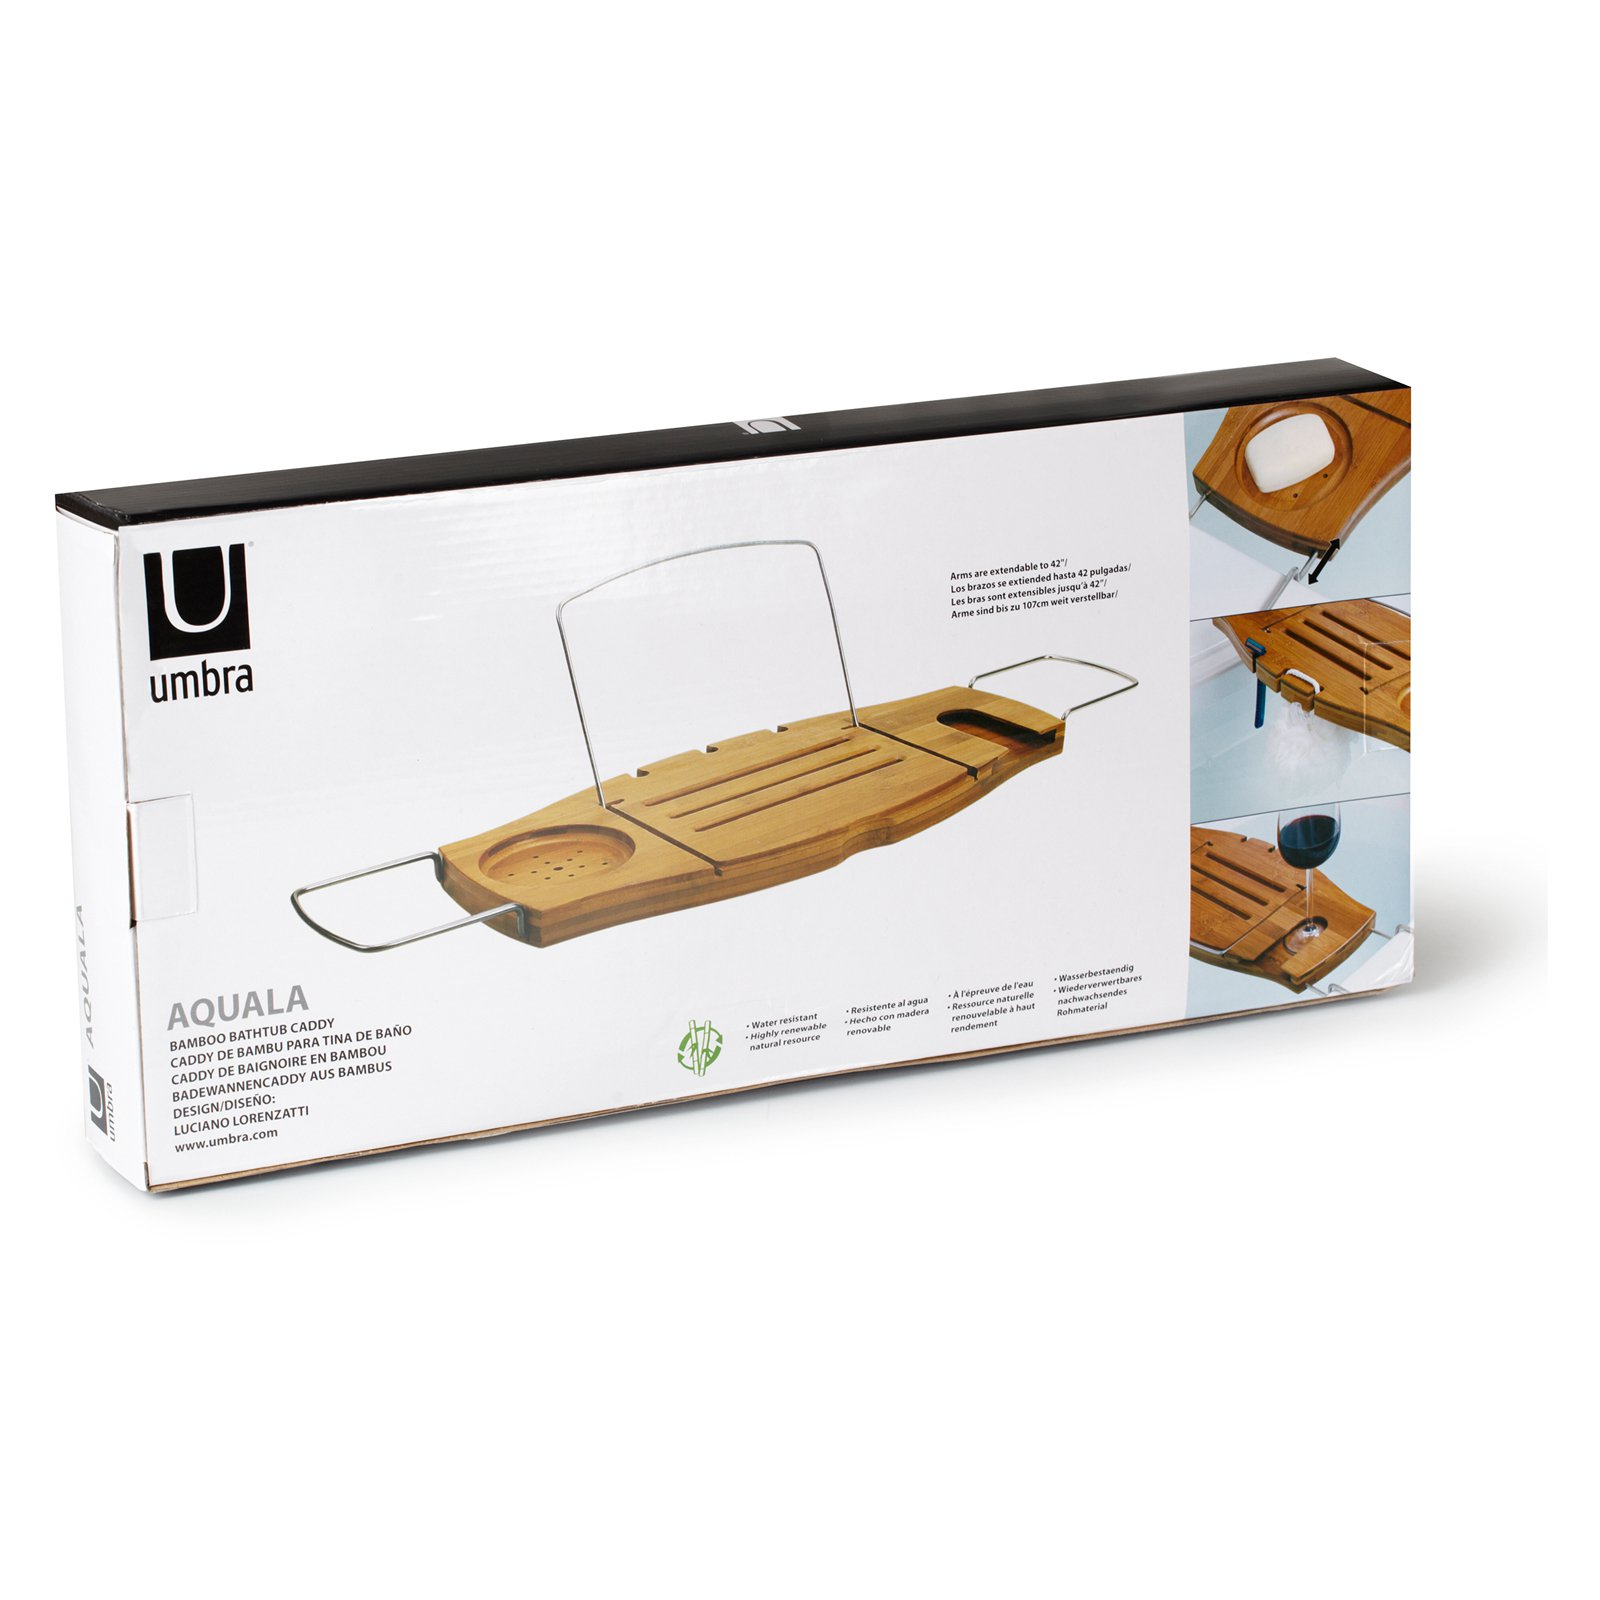 Umbra Aquala Bathtub Caddy - Walmart.com